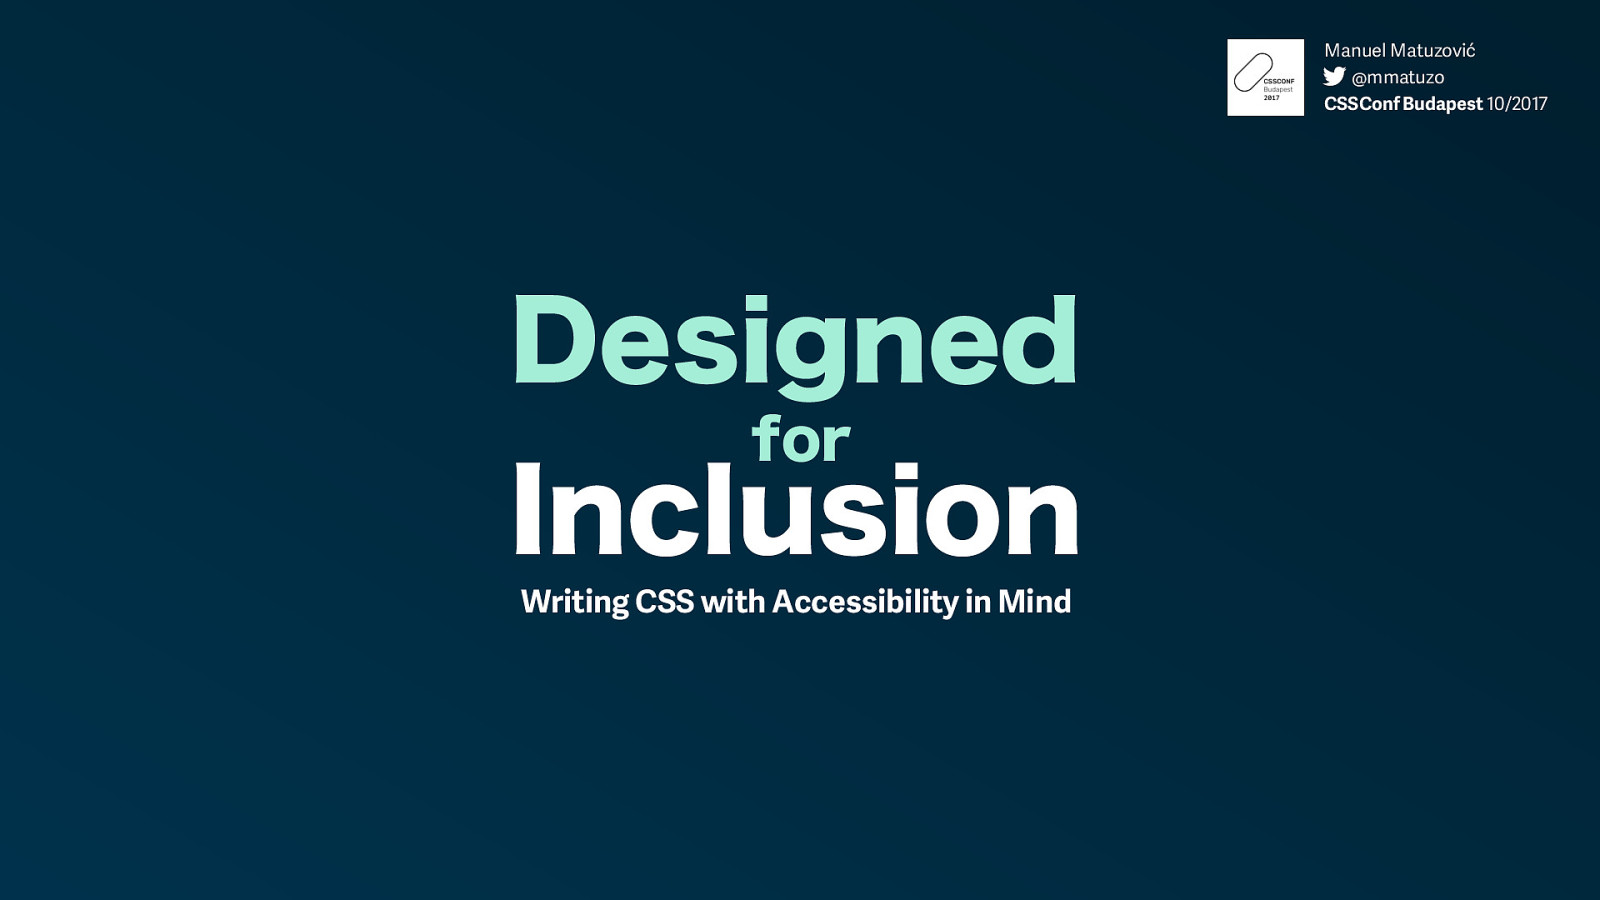 Designed for Inclusion: Writing CSS with Accessibility in Mind